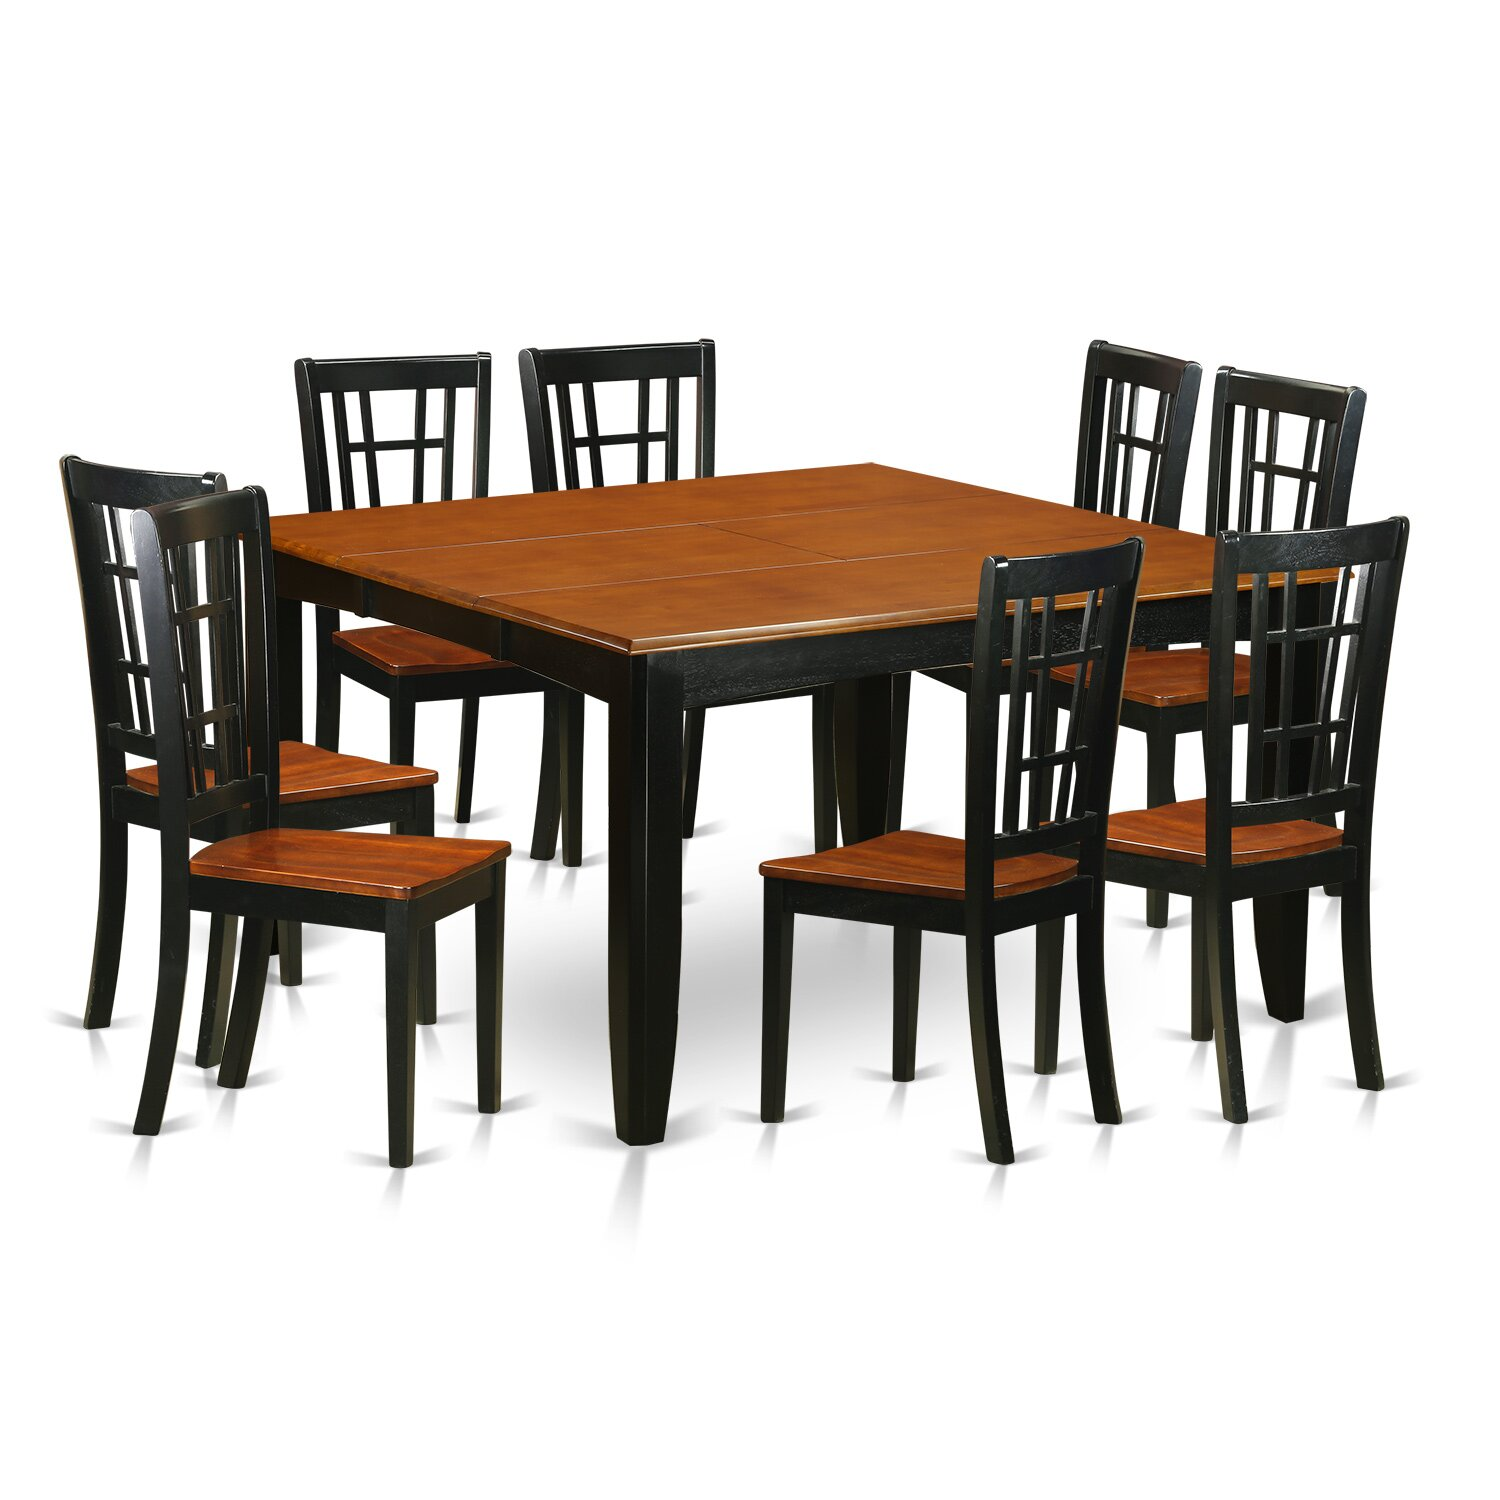 East west parfait 9 piece dining set wayfair for Dining room furniture 9 piece